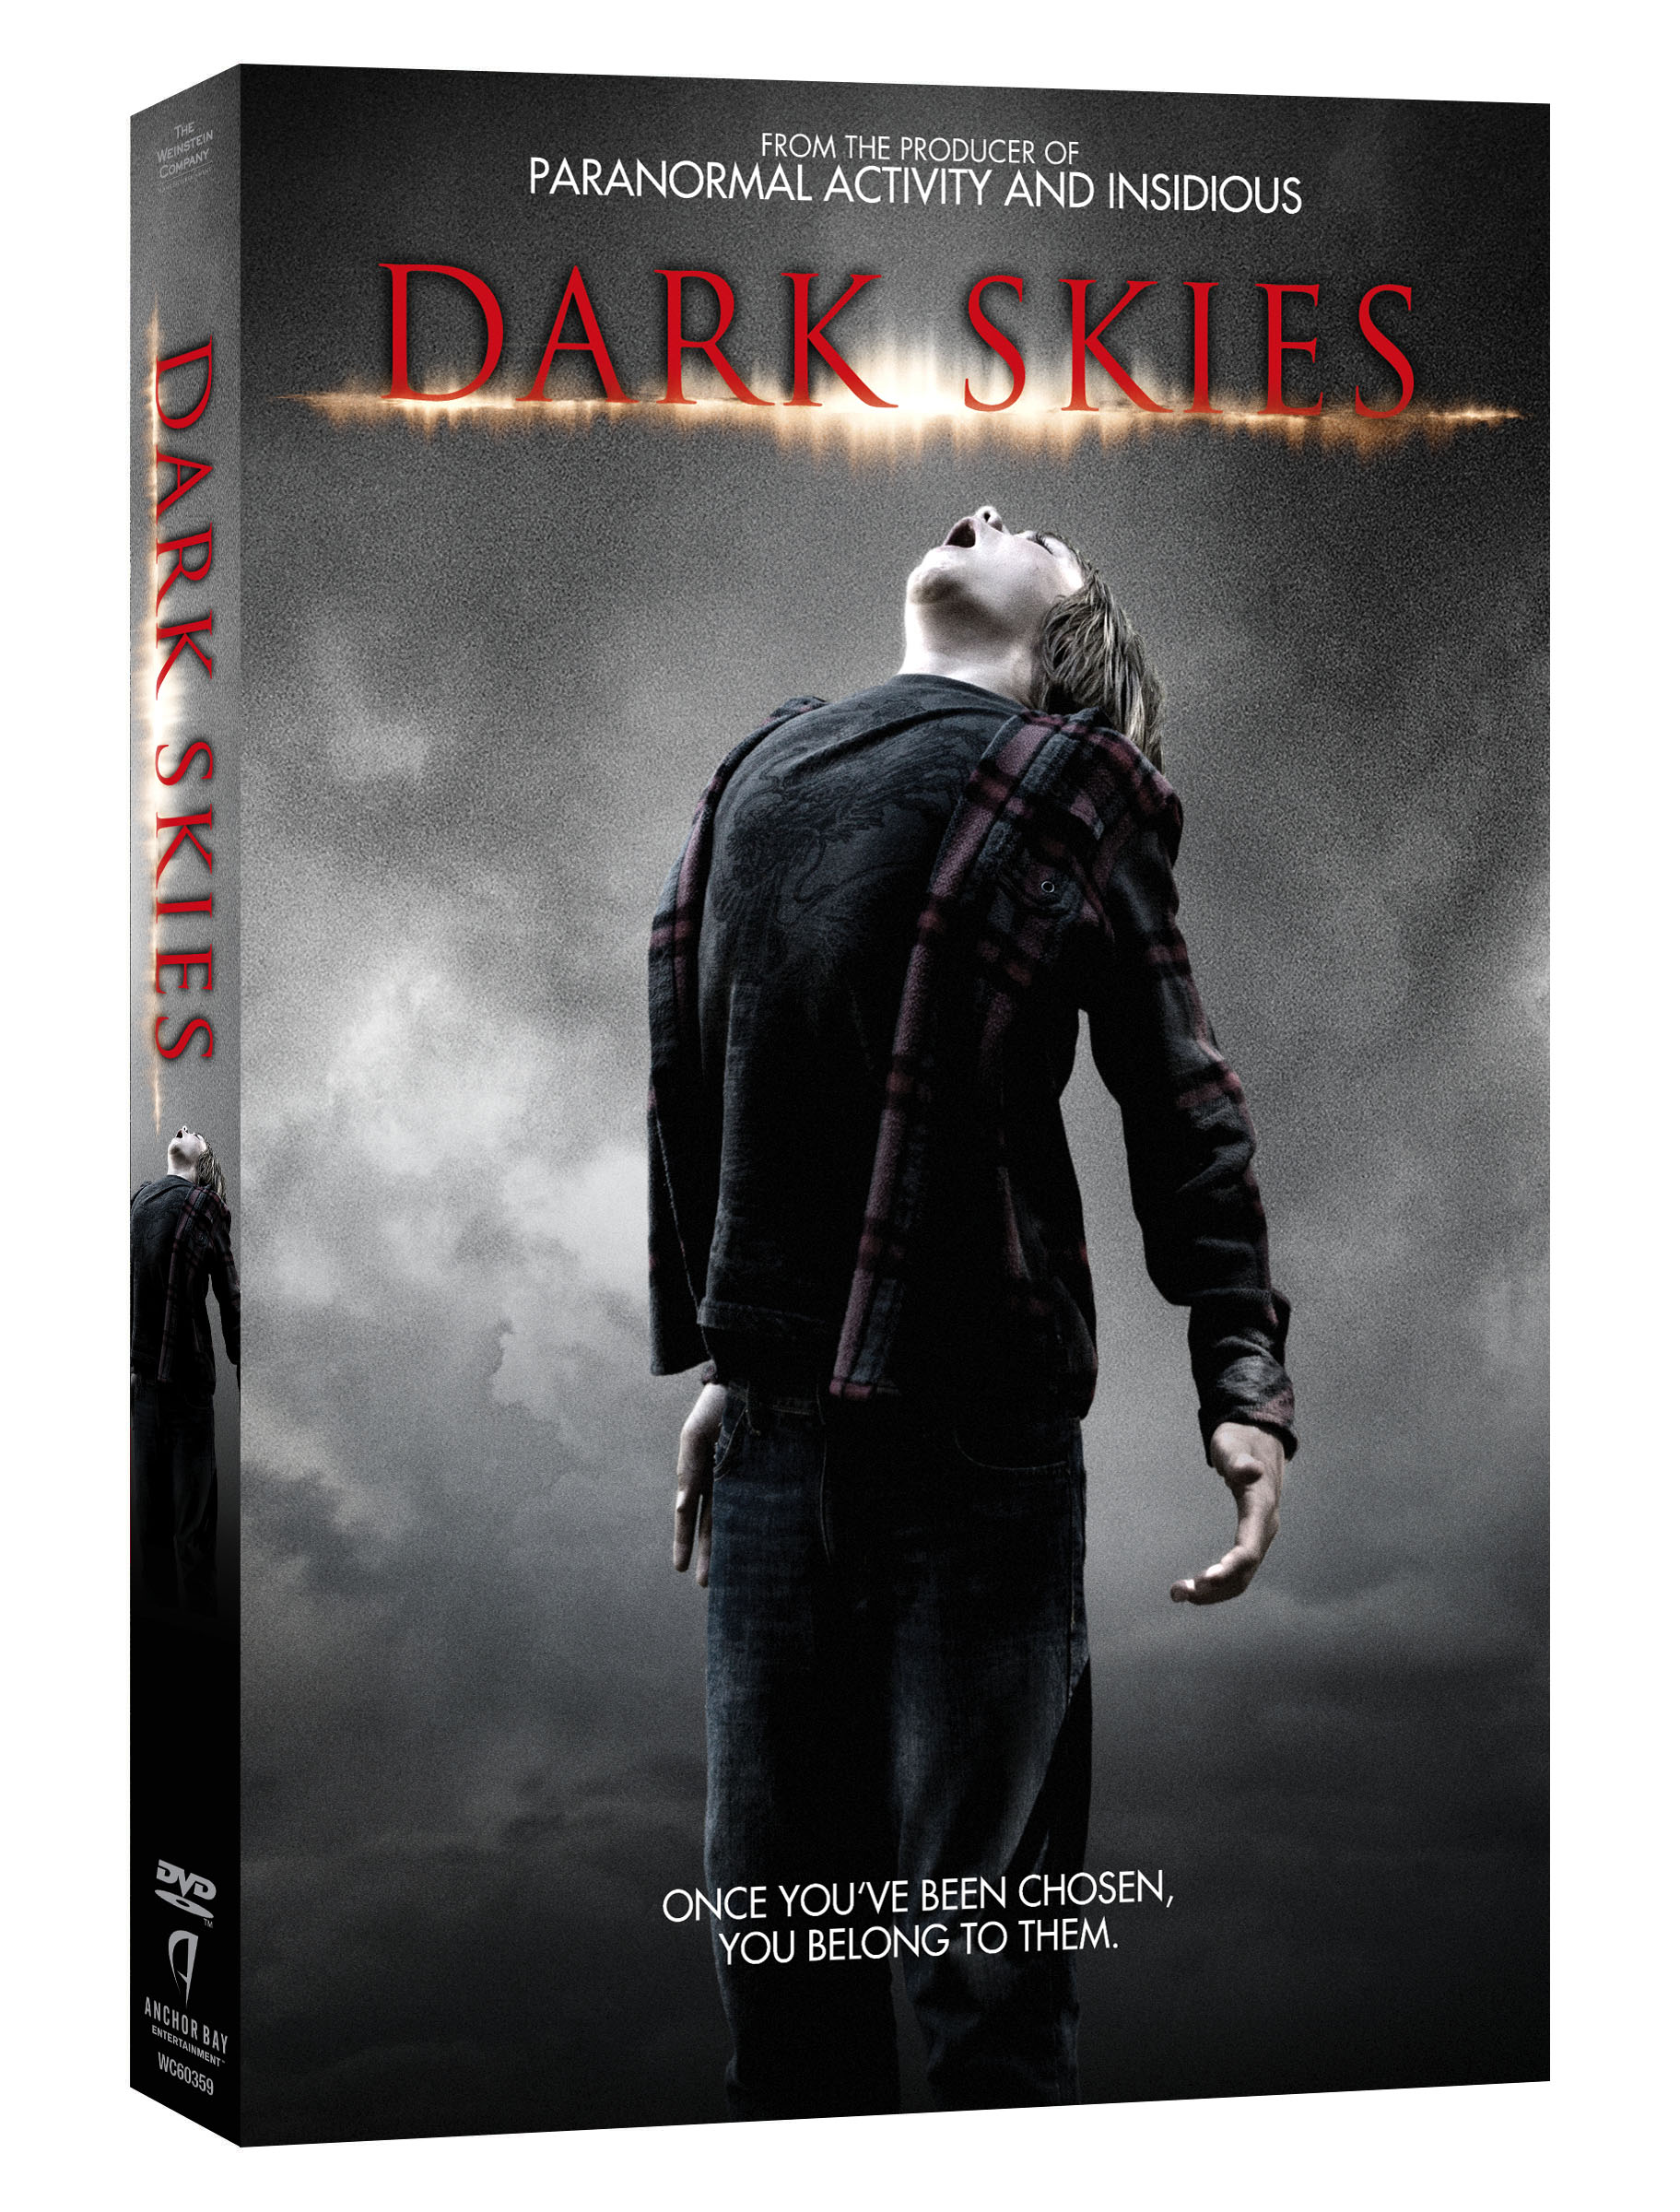 DARK SKIES on Blu-ray & DVD on May 28th!